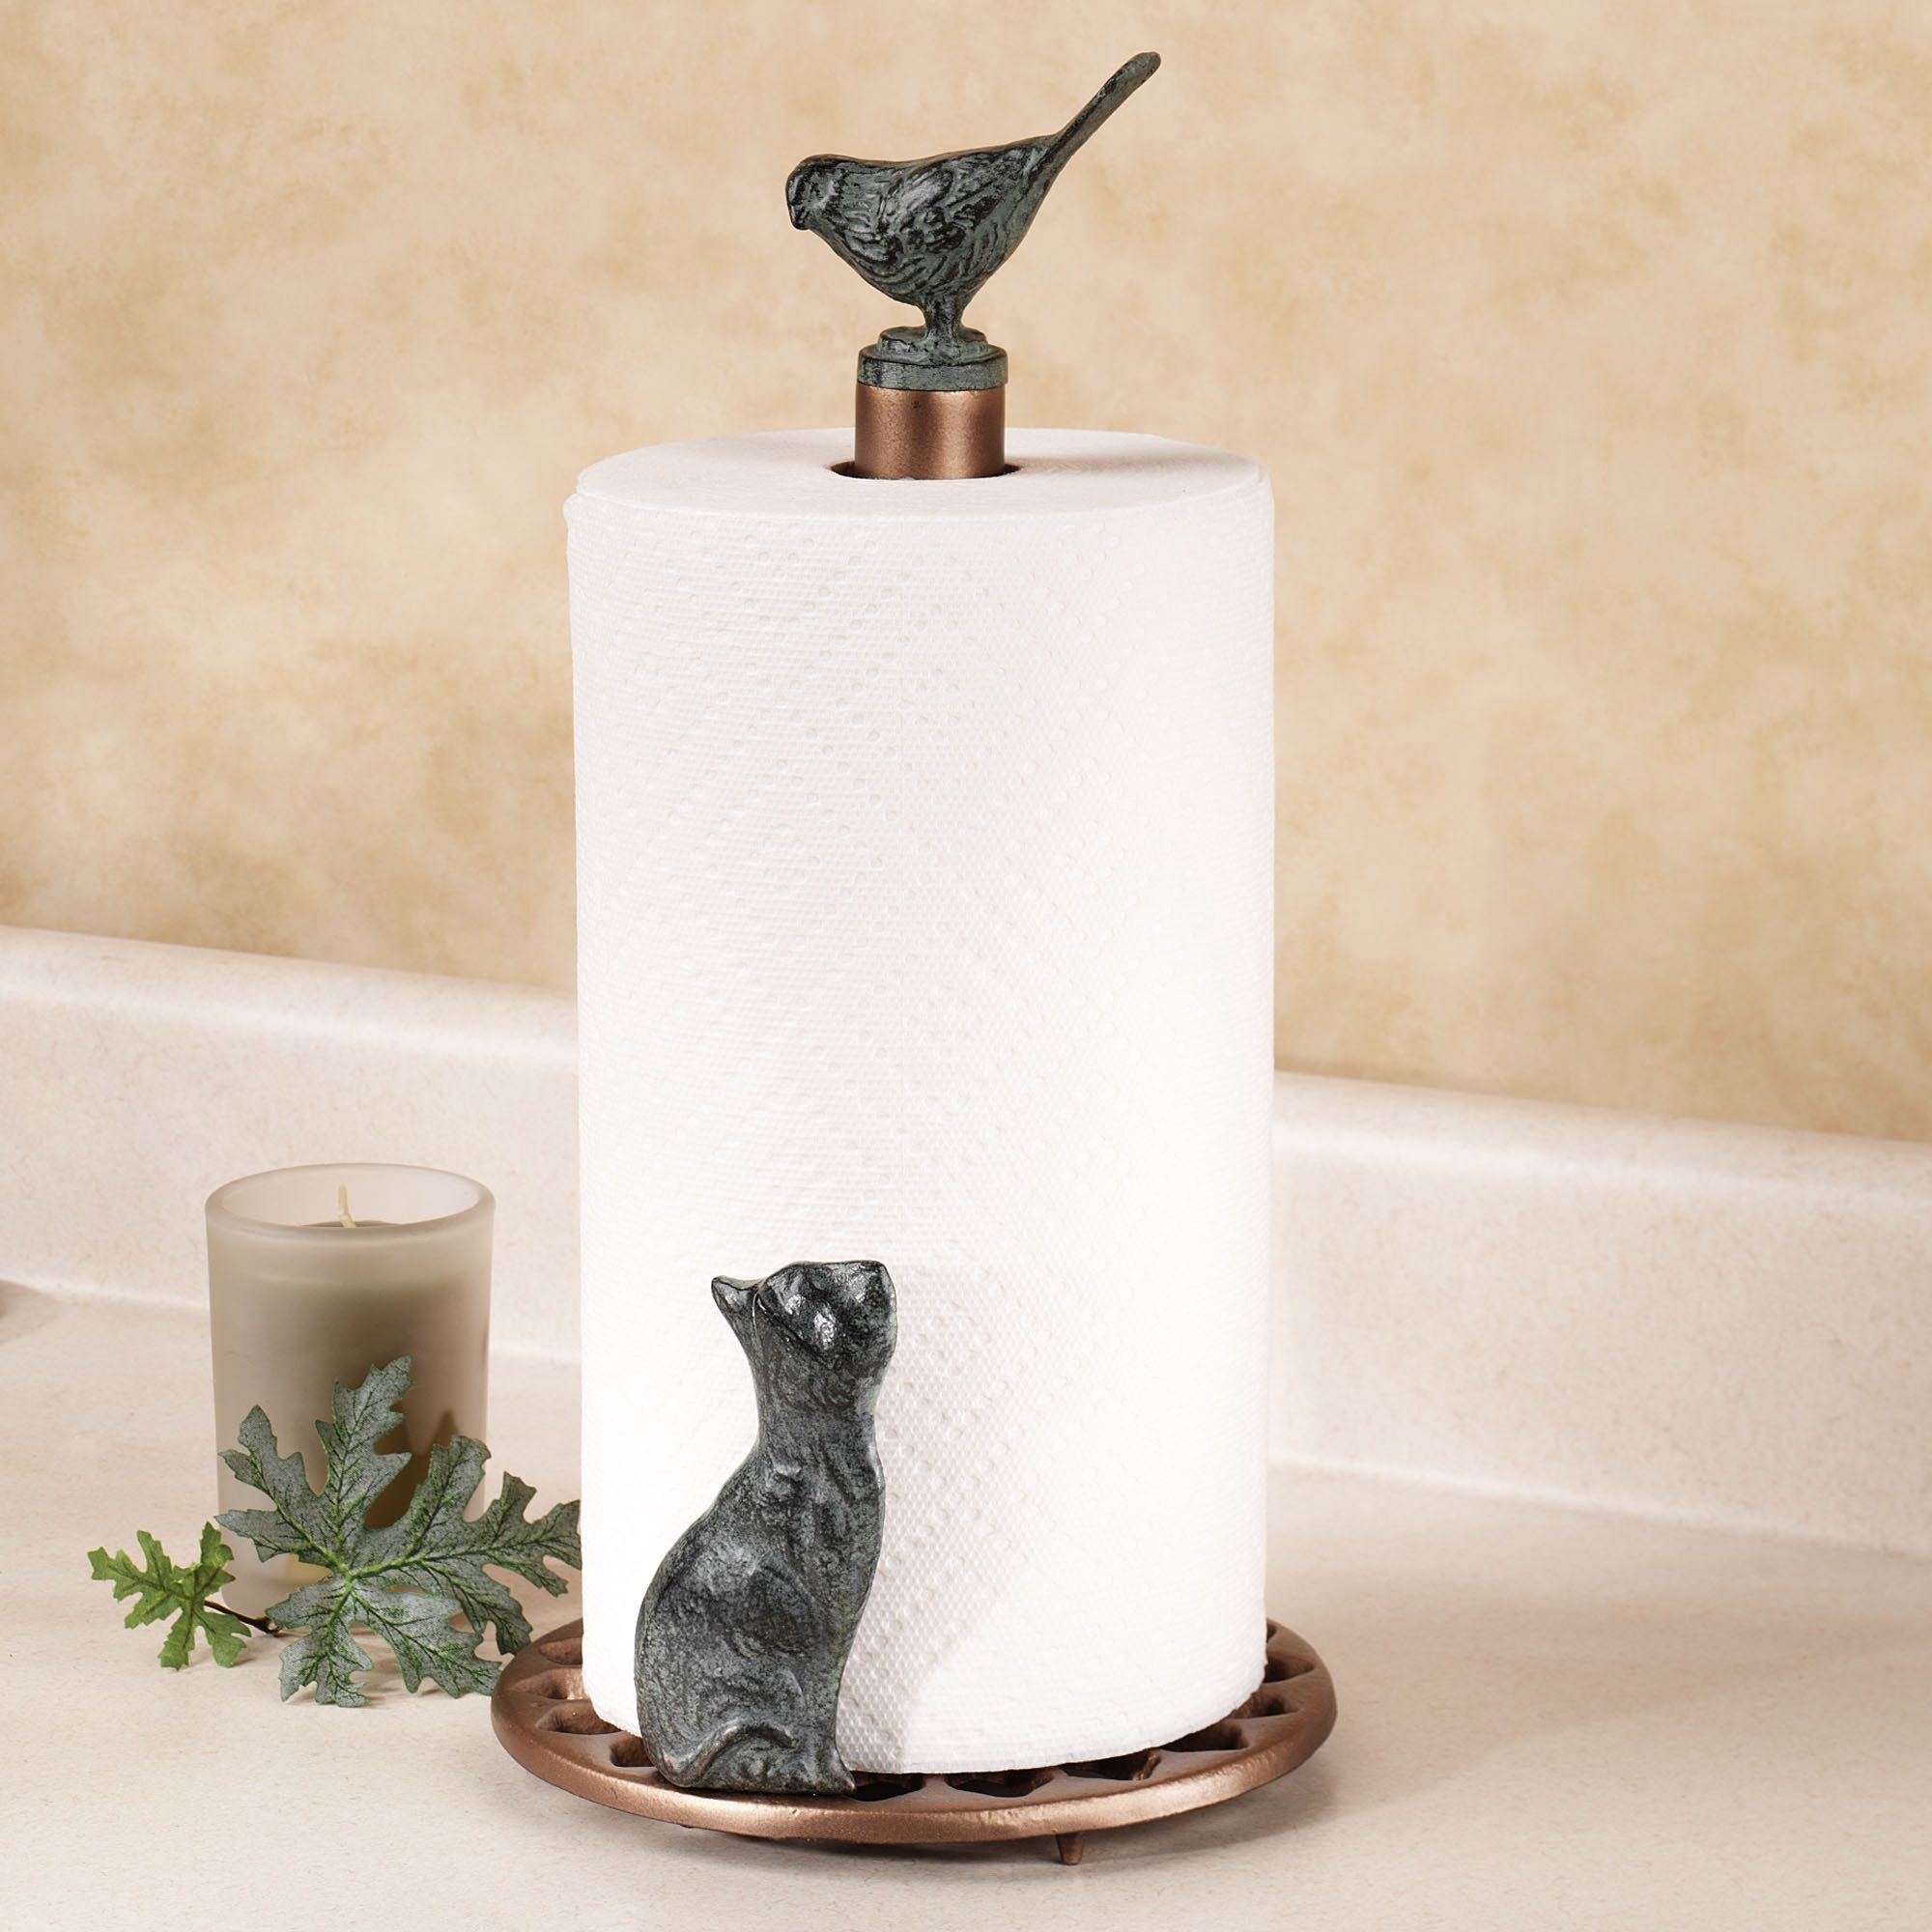 Automatic paper towel dispenser for home - Decorative Kitchen Paper Towel Holders Home Cat And Bird Paper Towel Holder Antique Gold